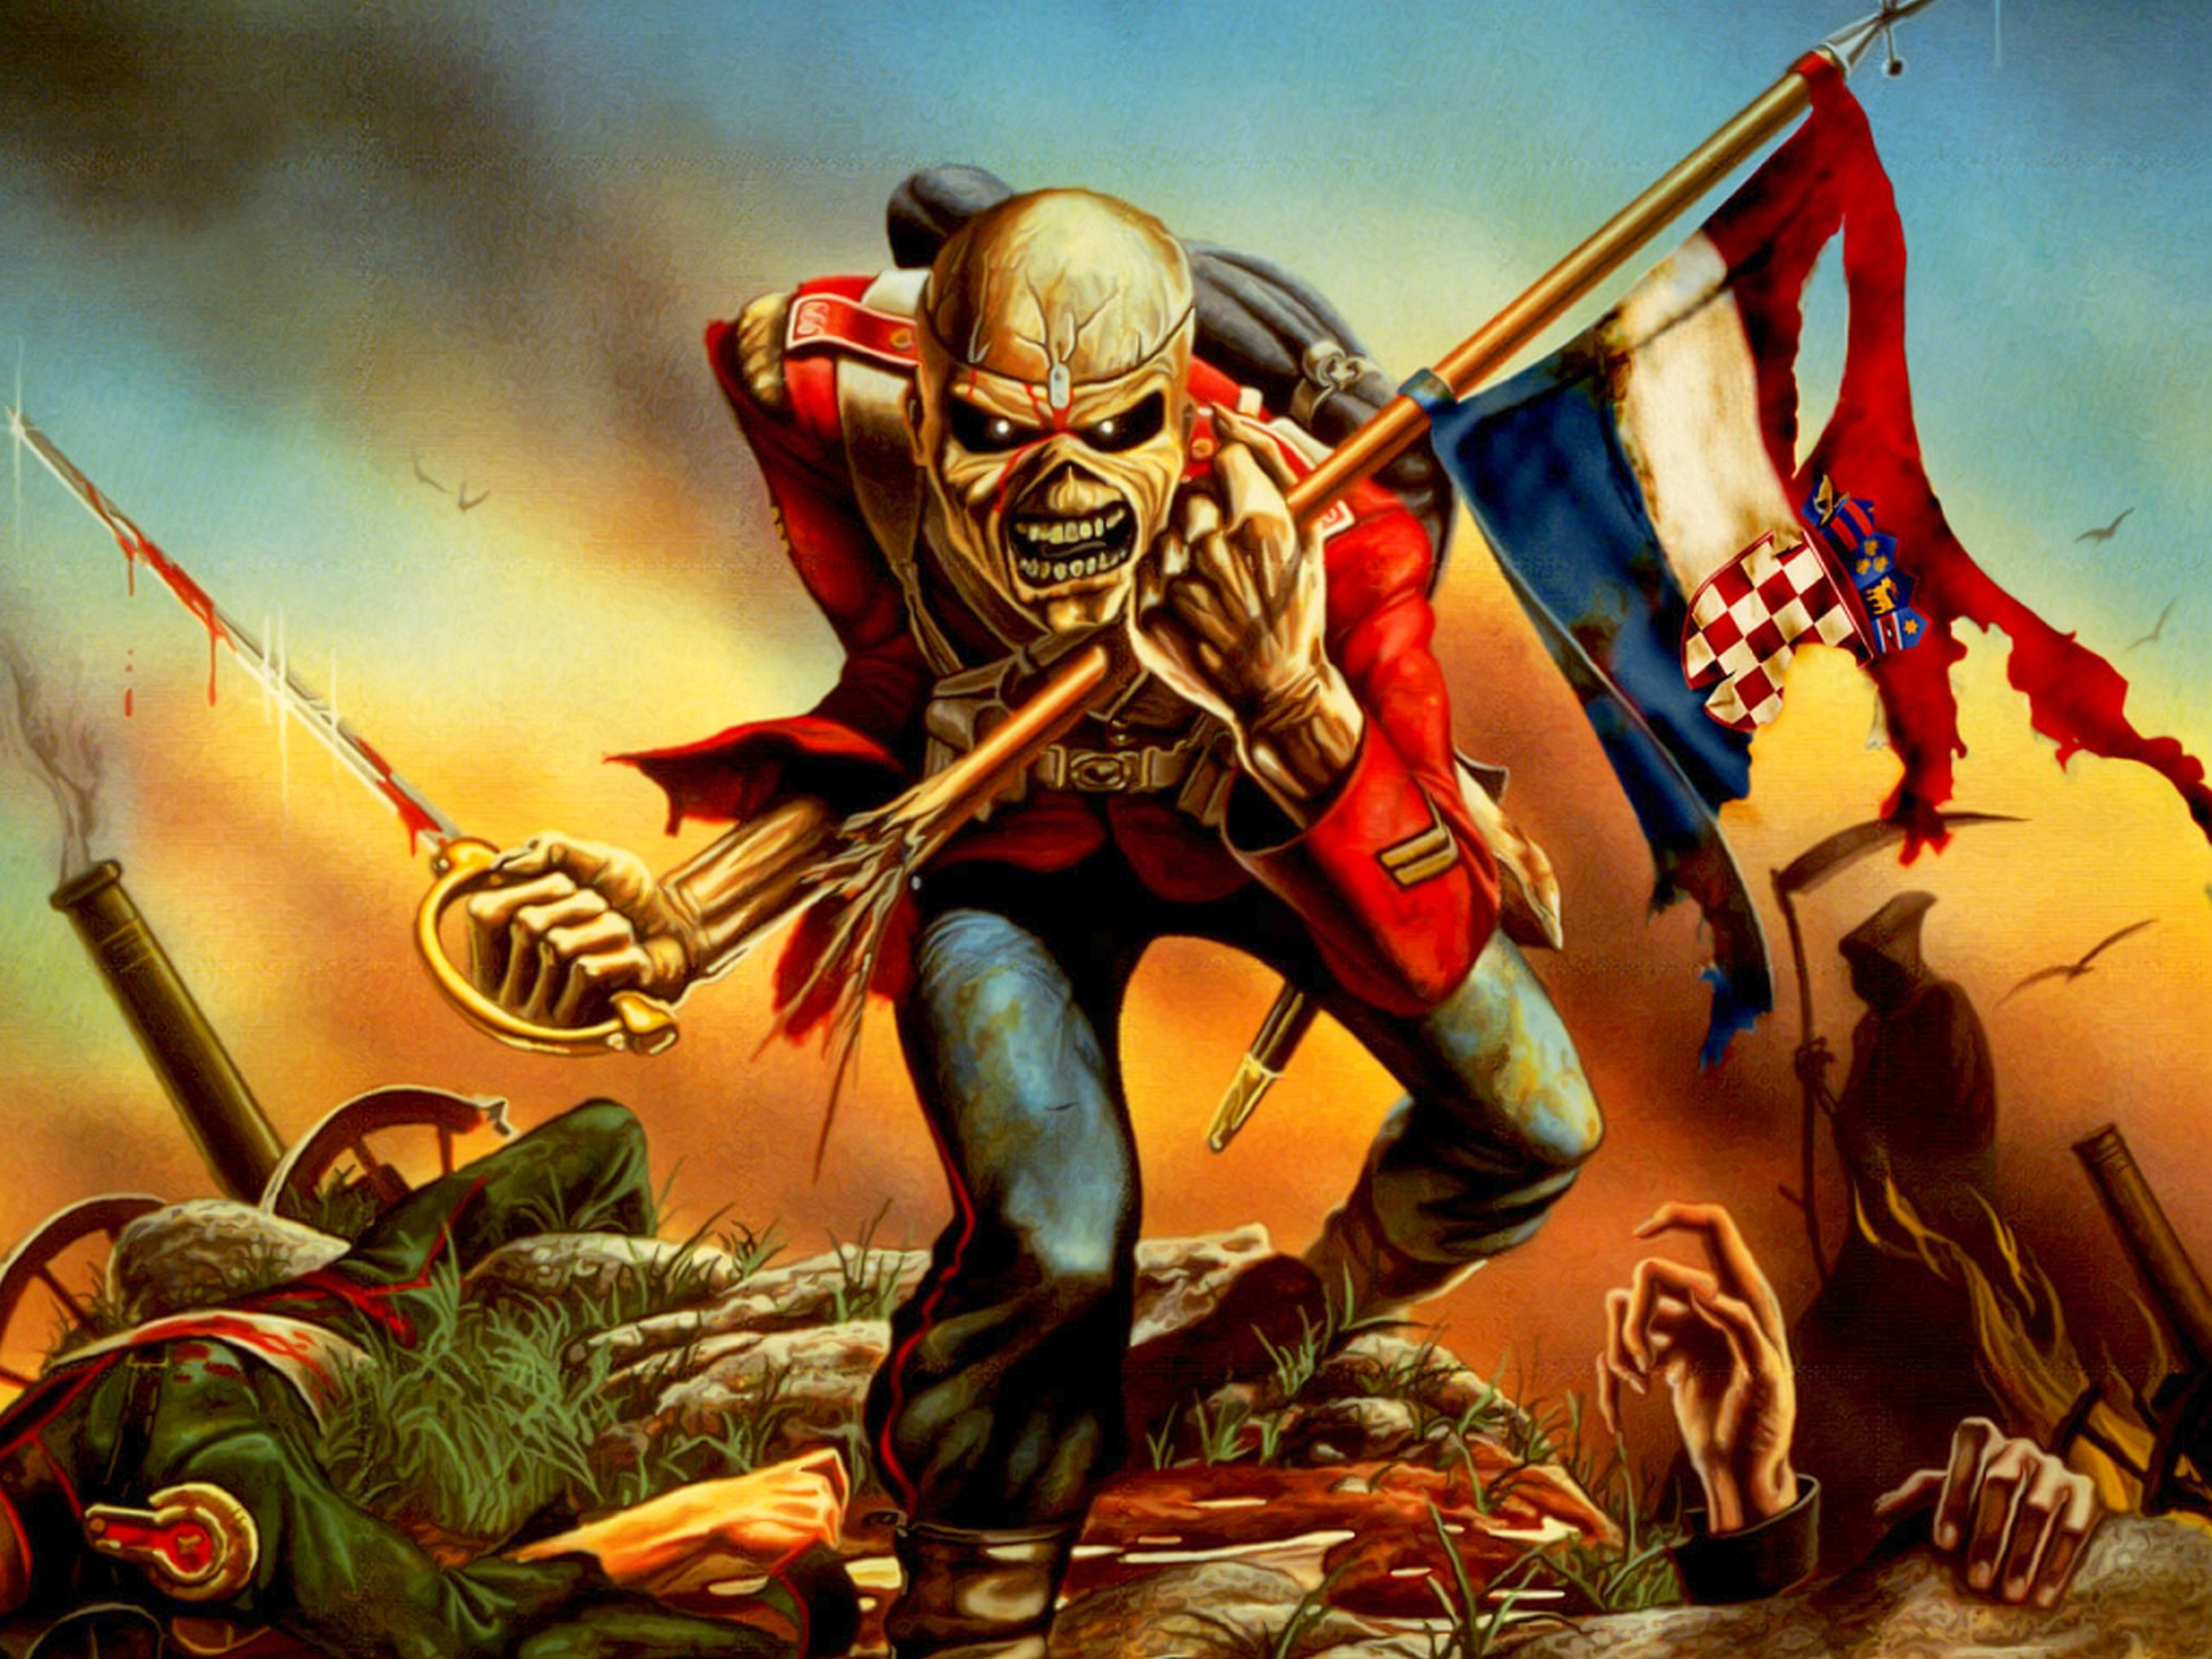 Iron Maiden Wallpaper 1920x1080 (79+ images)